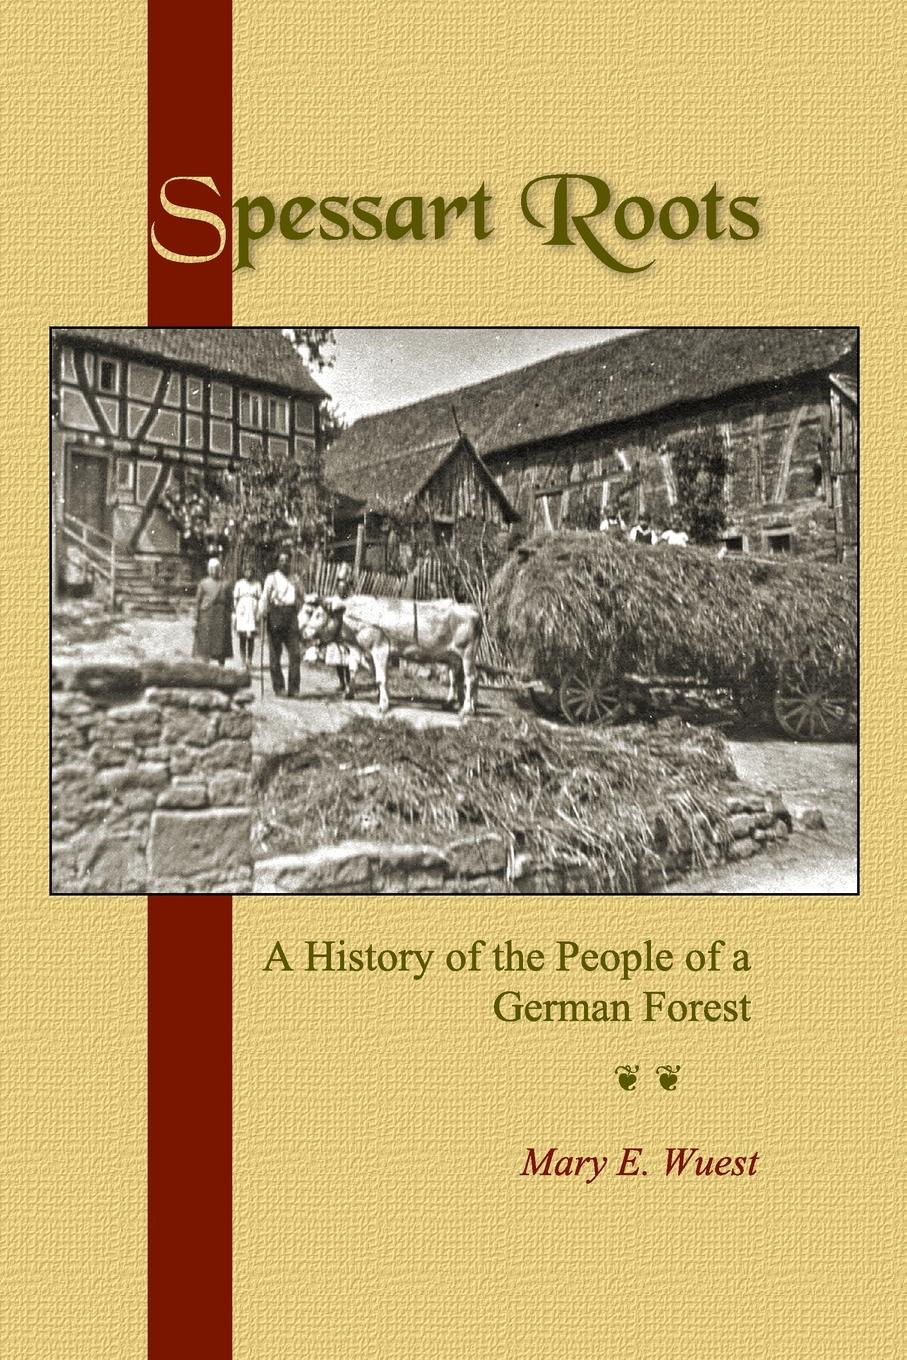 Mary E. Wuest Spessart Roots. A History of the People of a German Forest charles richard tuttle the centennial northwest an illustrated history of the northwest being a full and complete civil political and military history of this great section of the united states from its earliest settlement to the present time